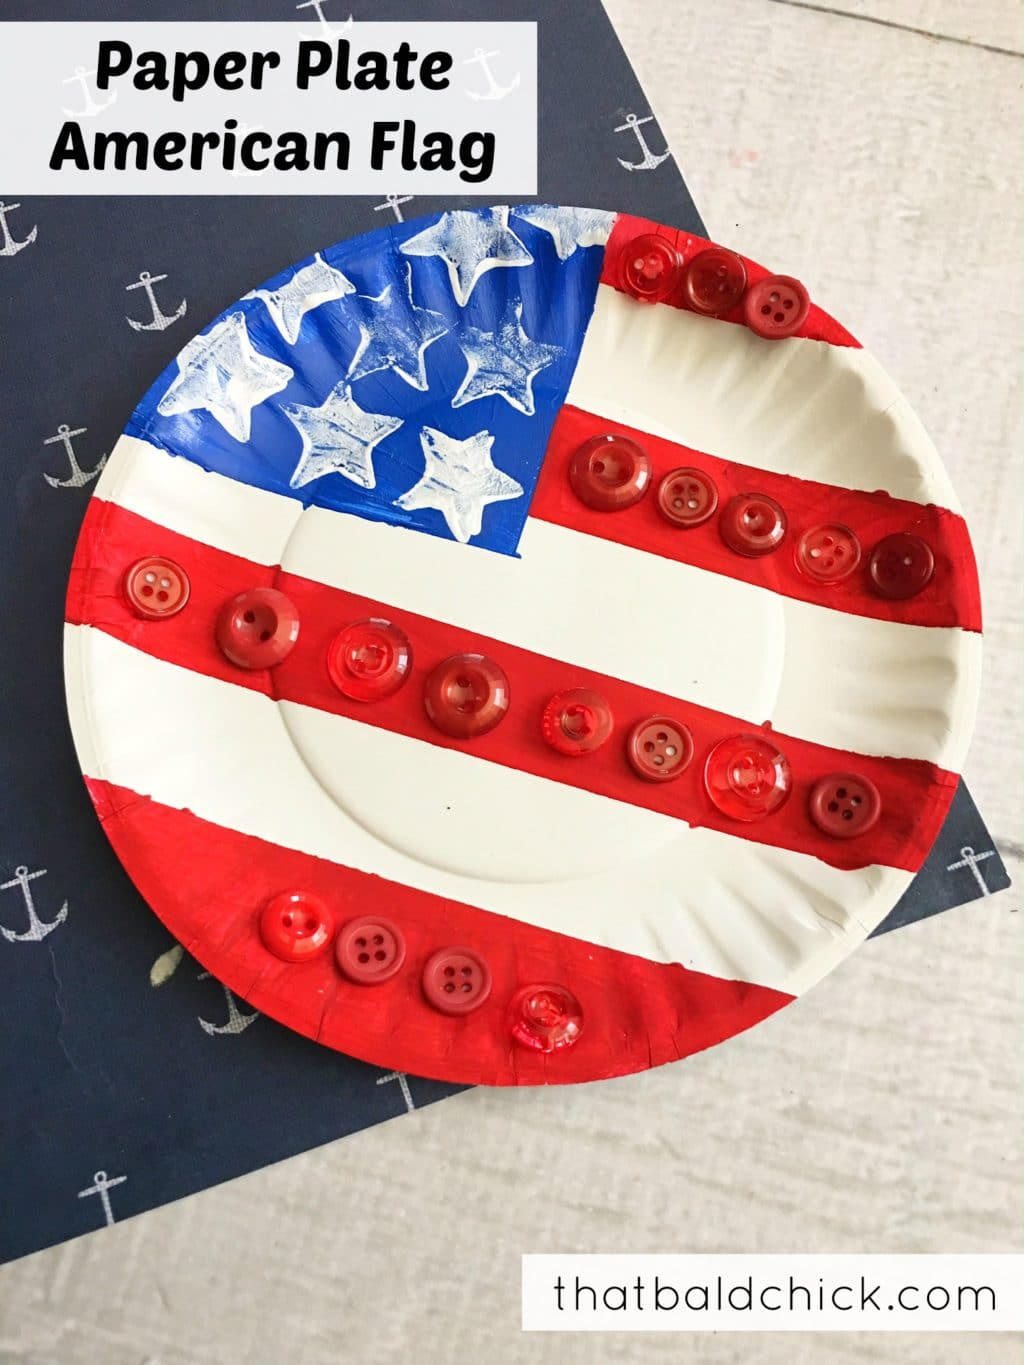 Paper Plate American Flag at thatbaldchick.com